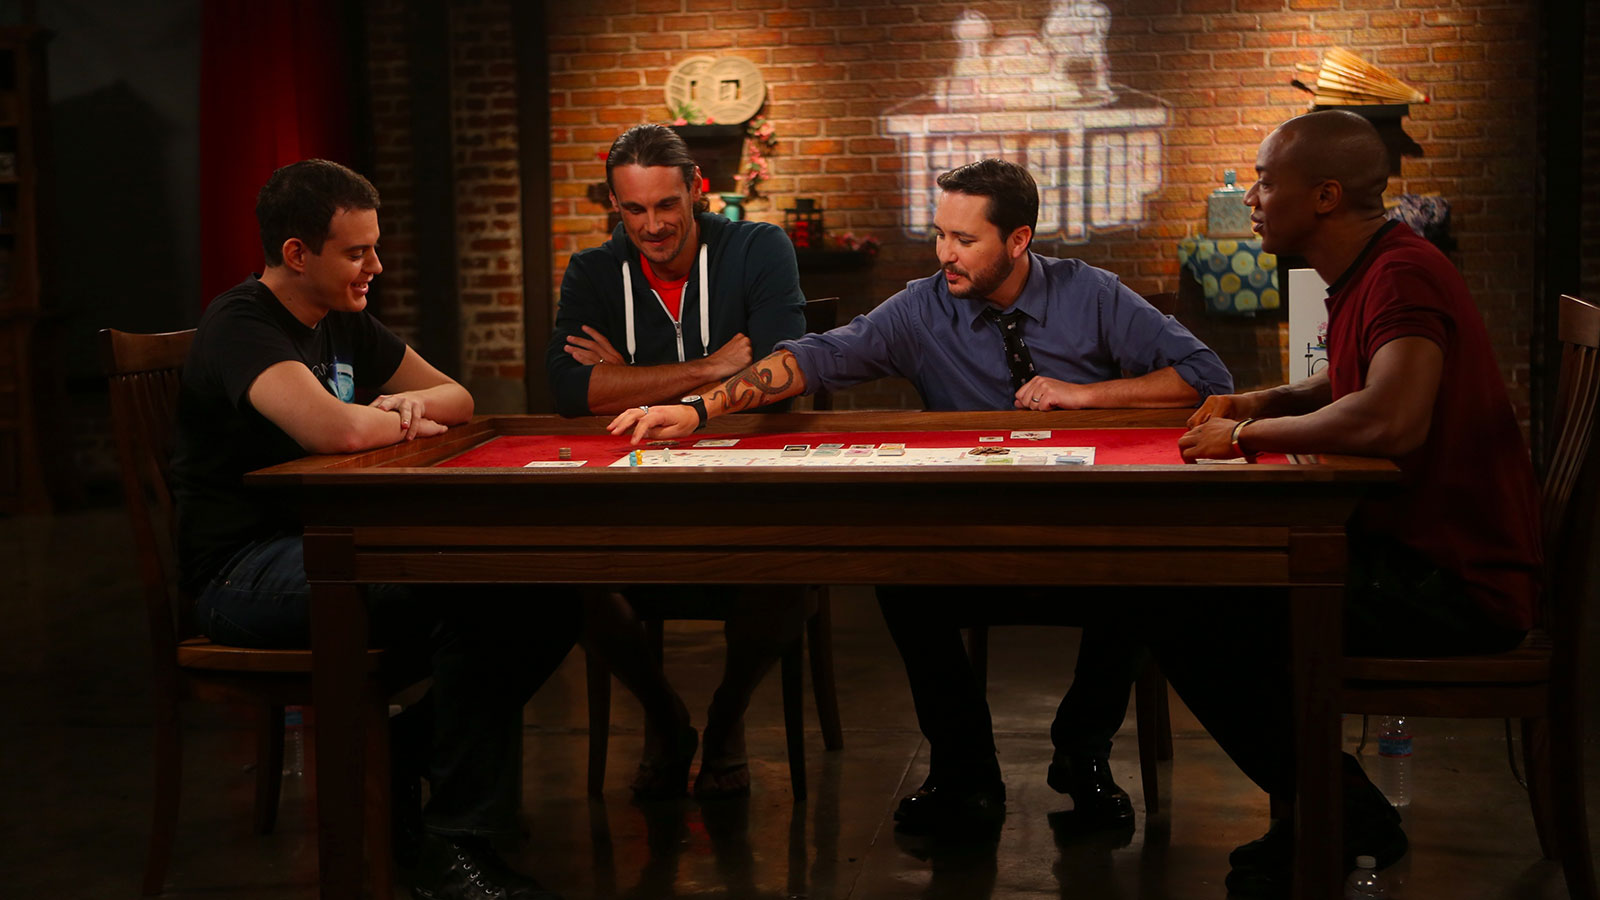 The Best Tabletop Gaming Shows on YouTube